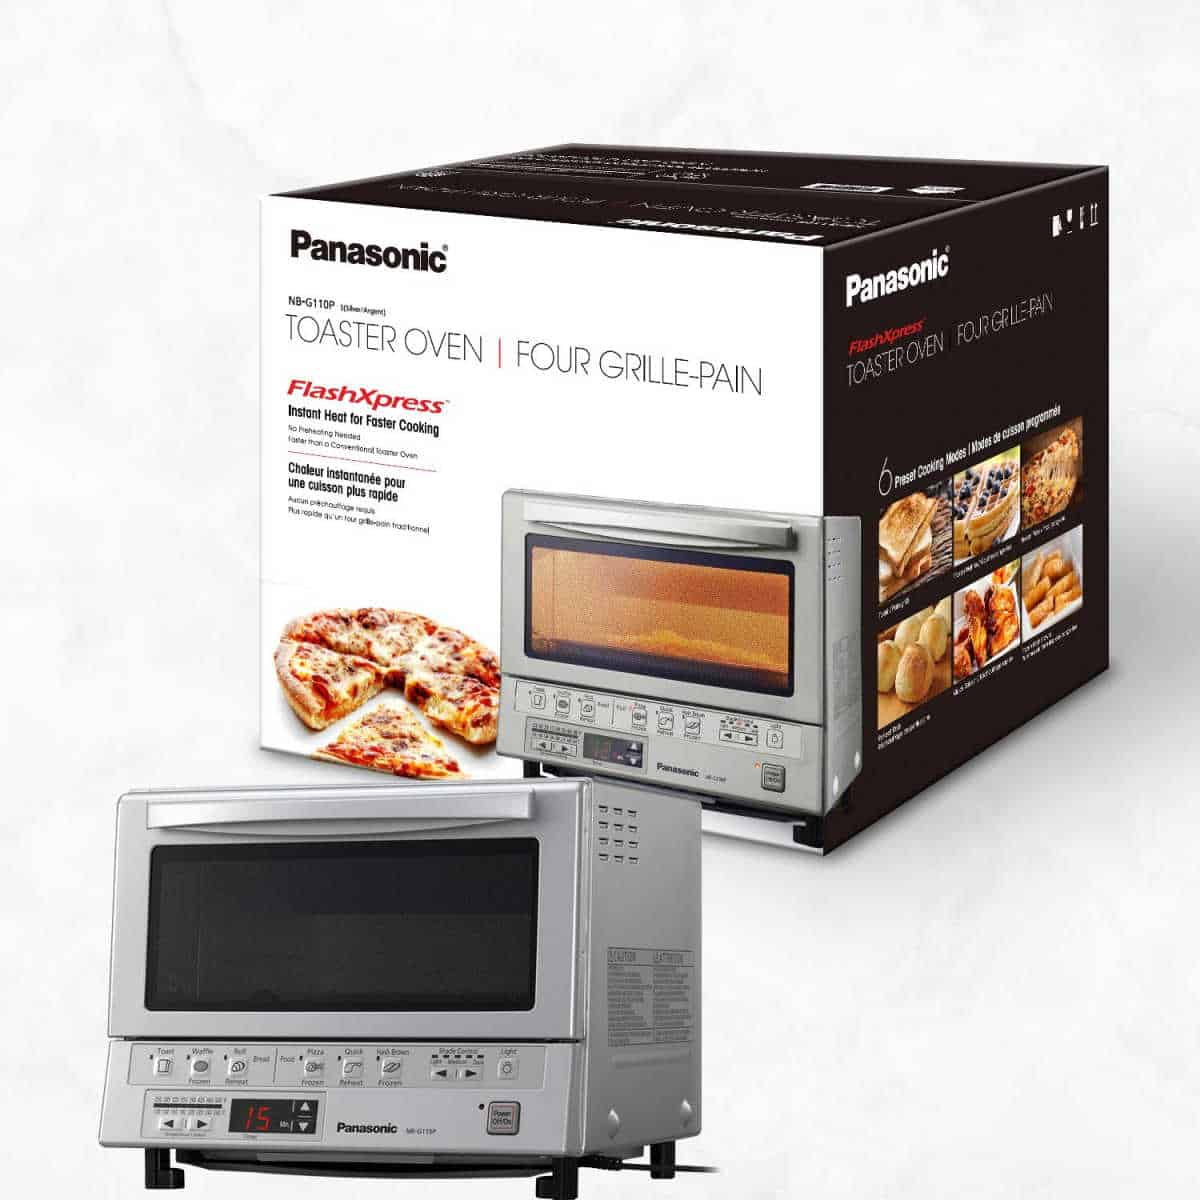 Panasonic FlashXpress Toaster Oven | Hey Alexa, Get These 21 Kitchen Appliances On Amazon